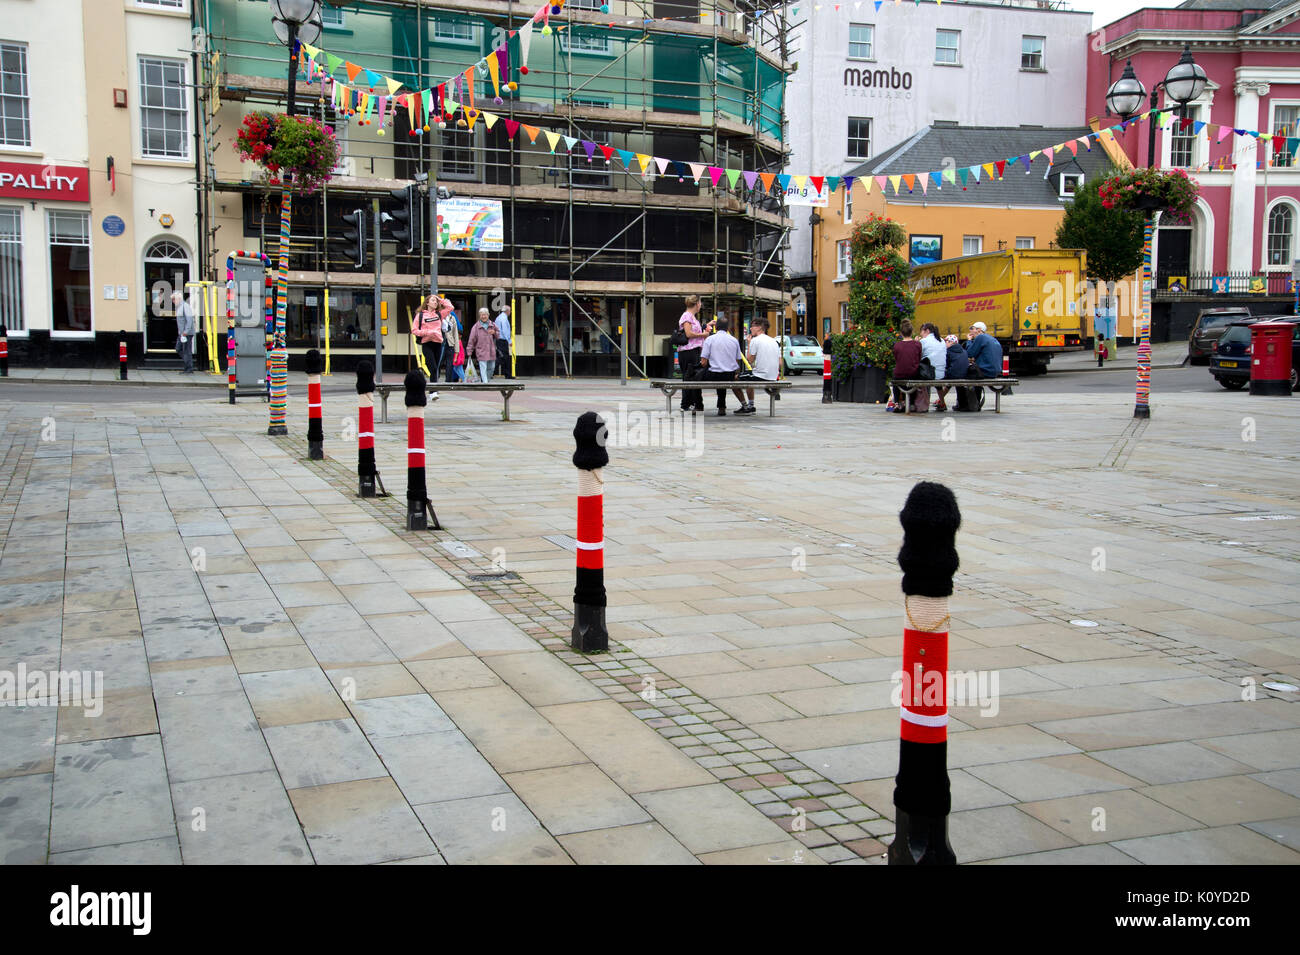 West Wales. Haverford West. Breaking Out the Gallery .... outdoor art, part of town regeneration and celebration. Knitted guardsmen covers for street  - Stock Image